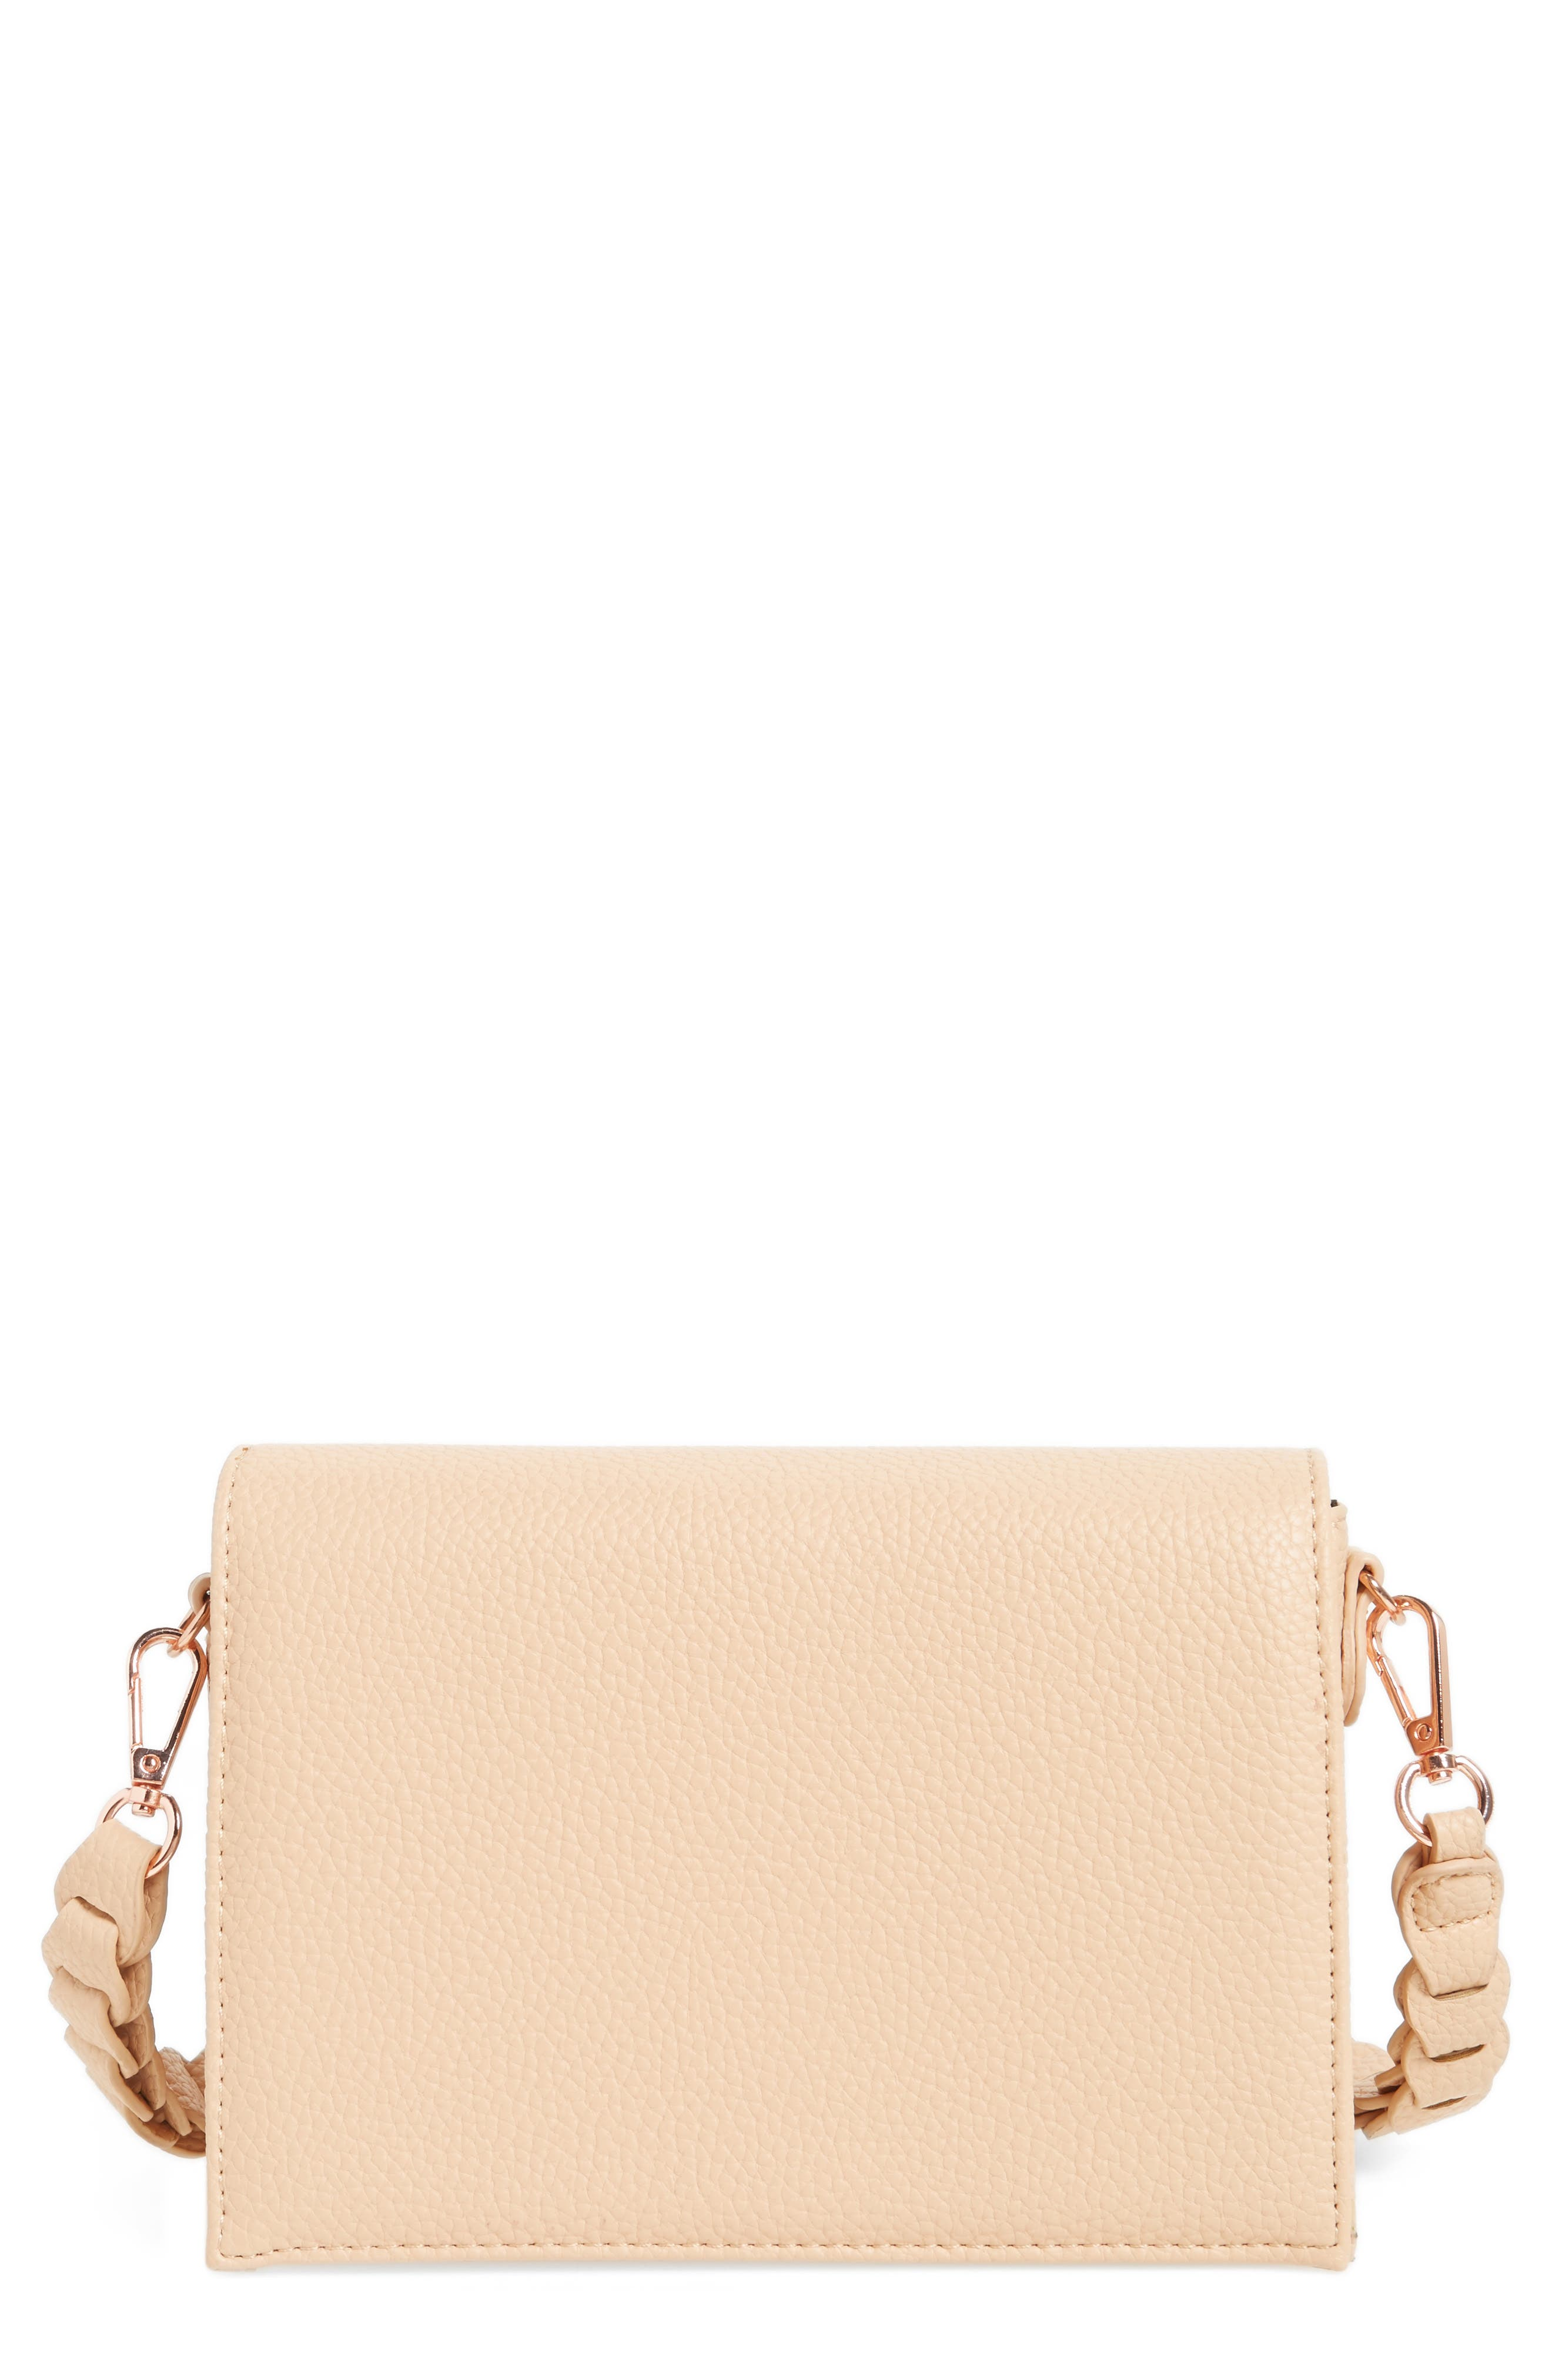 Street Level Braided Handle Crossbody Bag